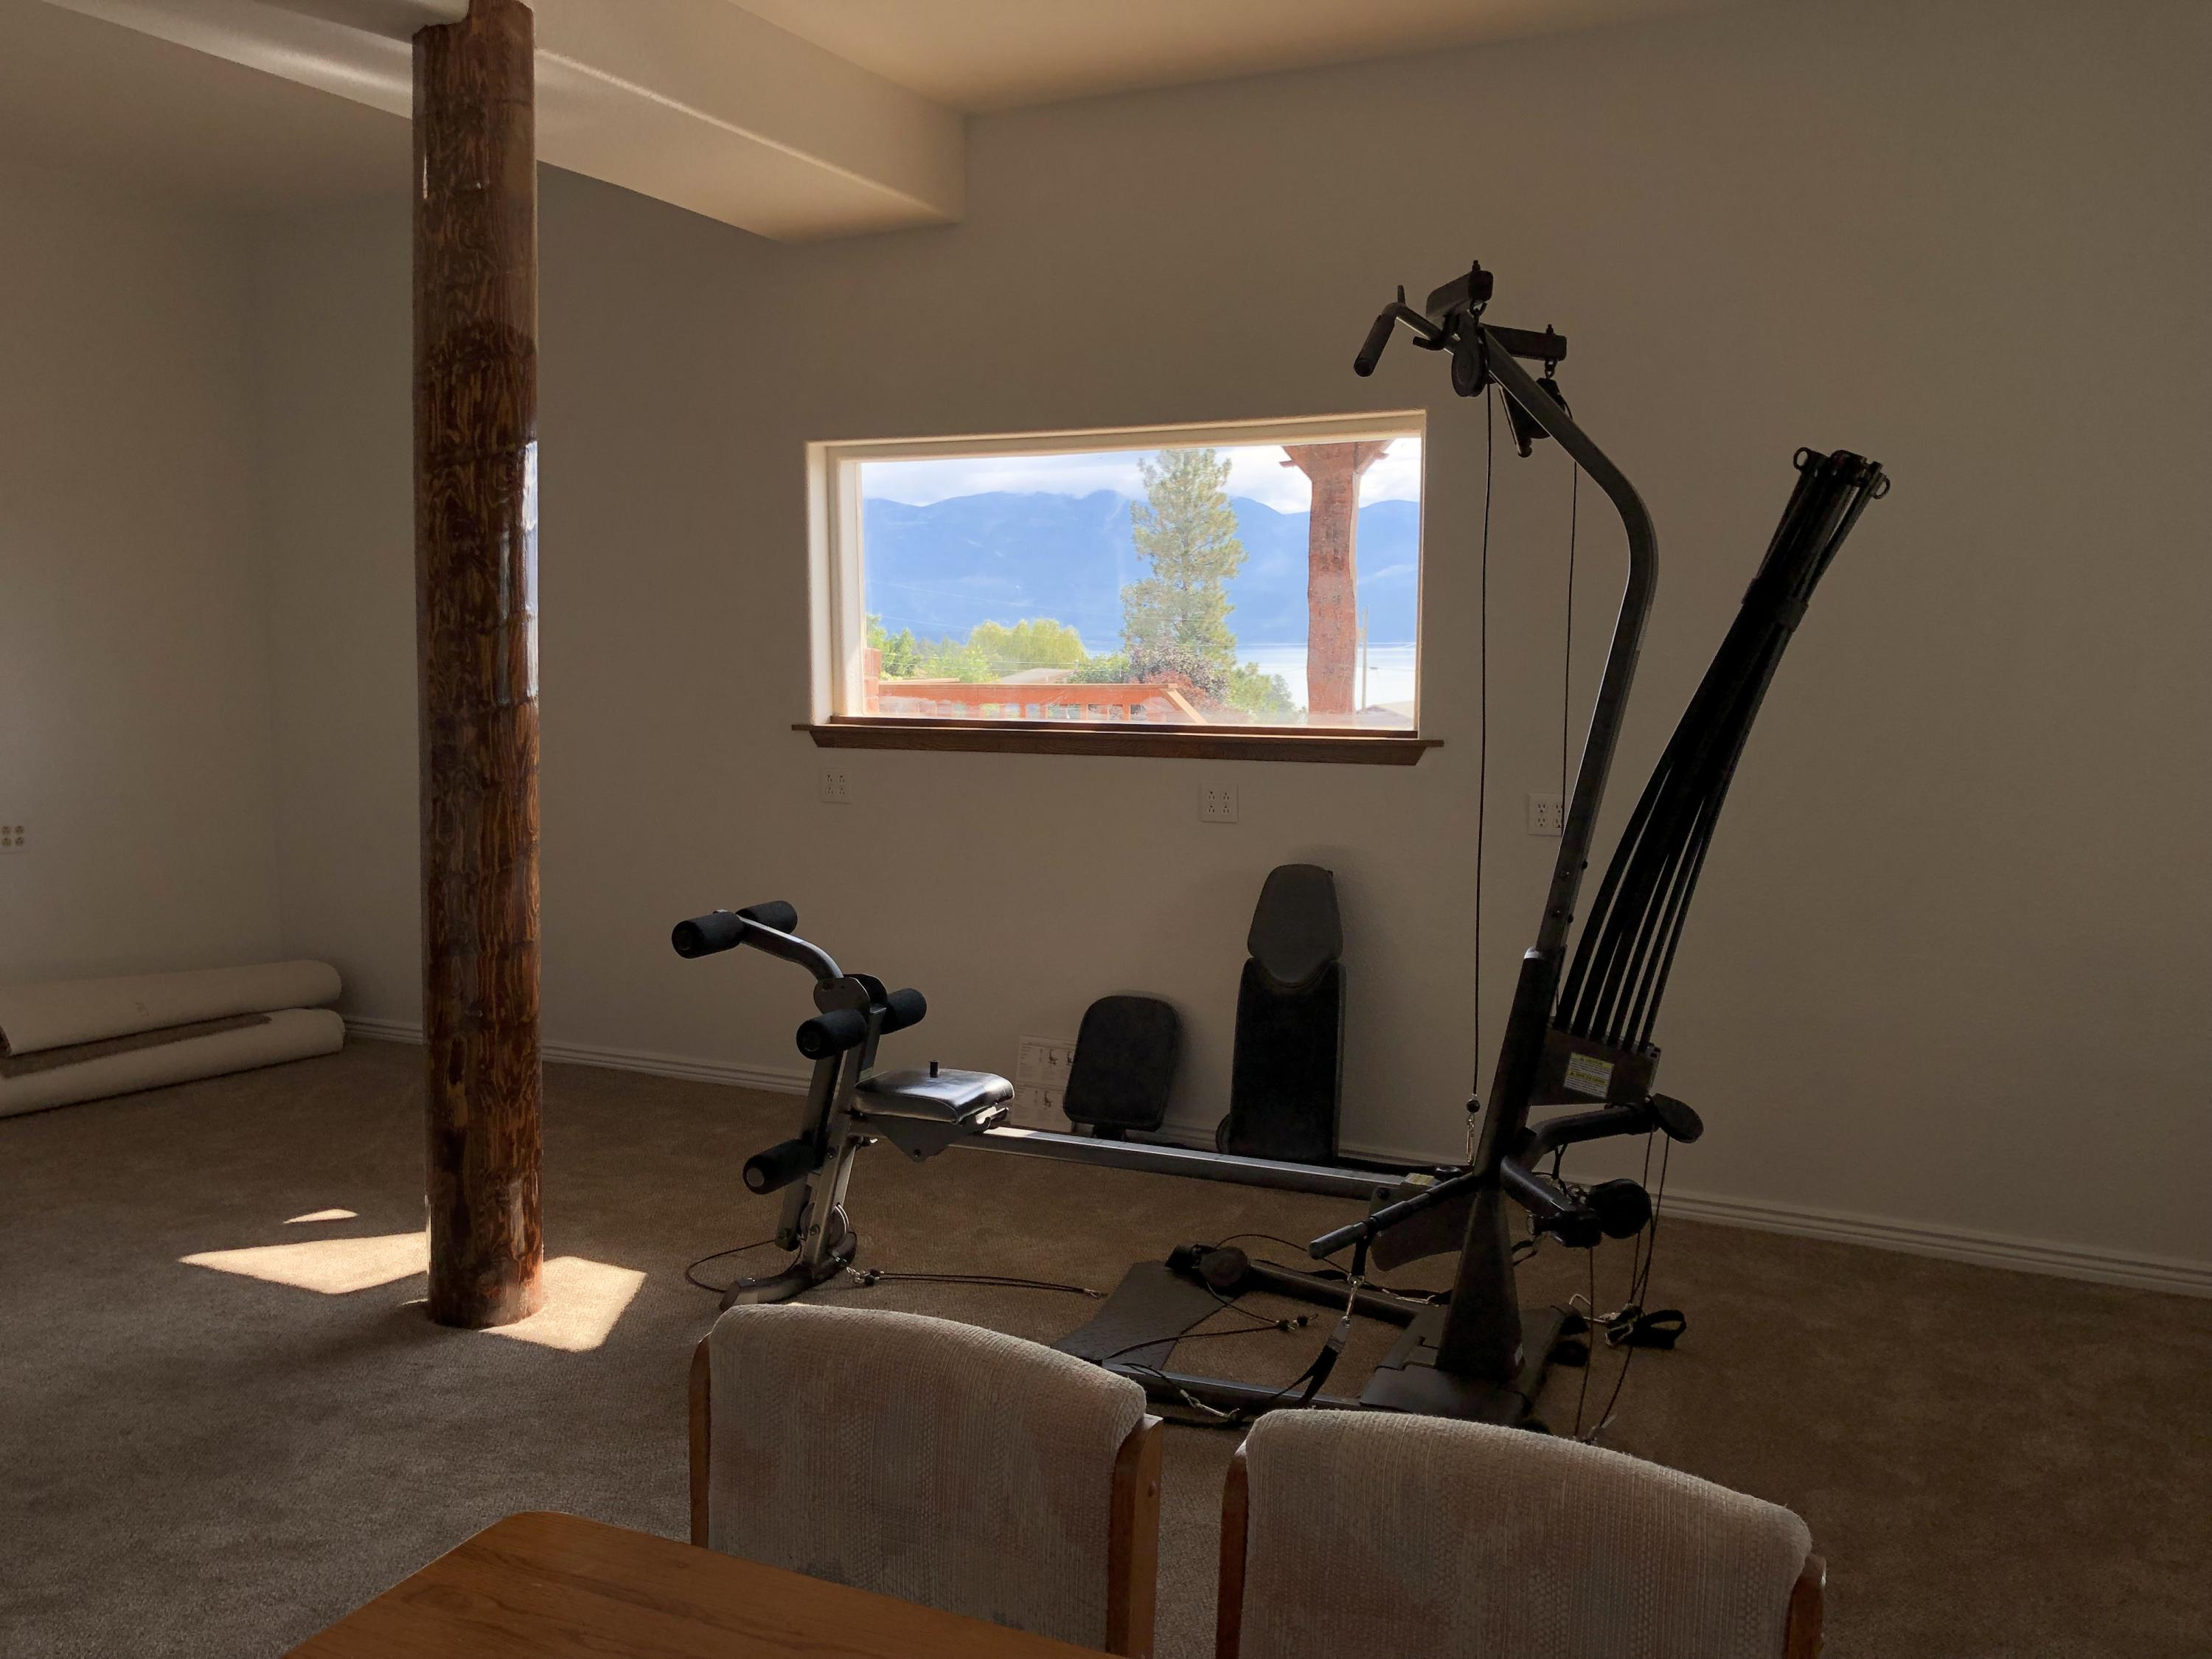 039 Workout room 3